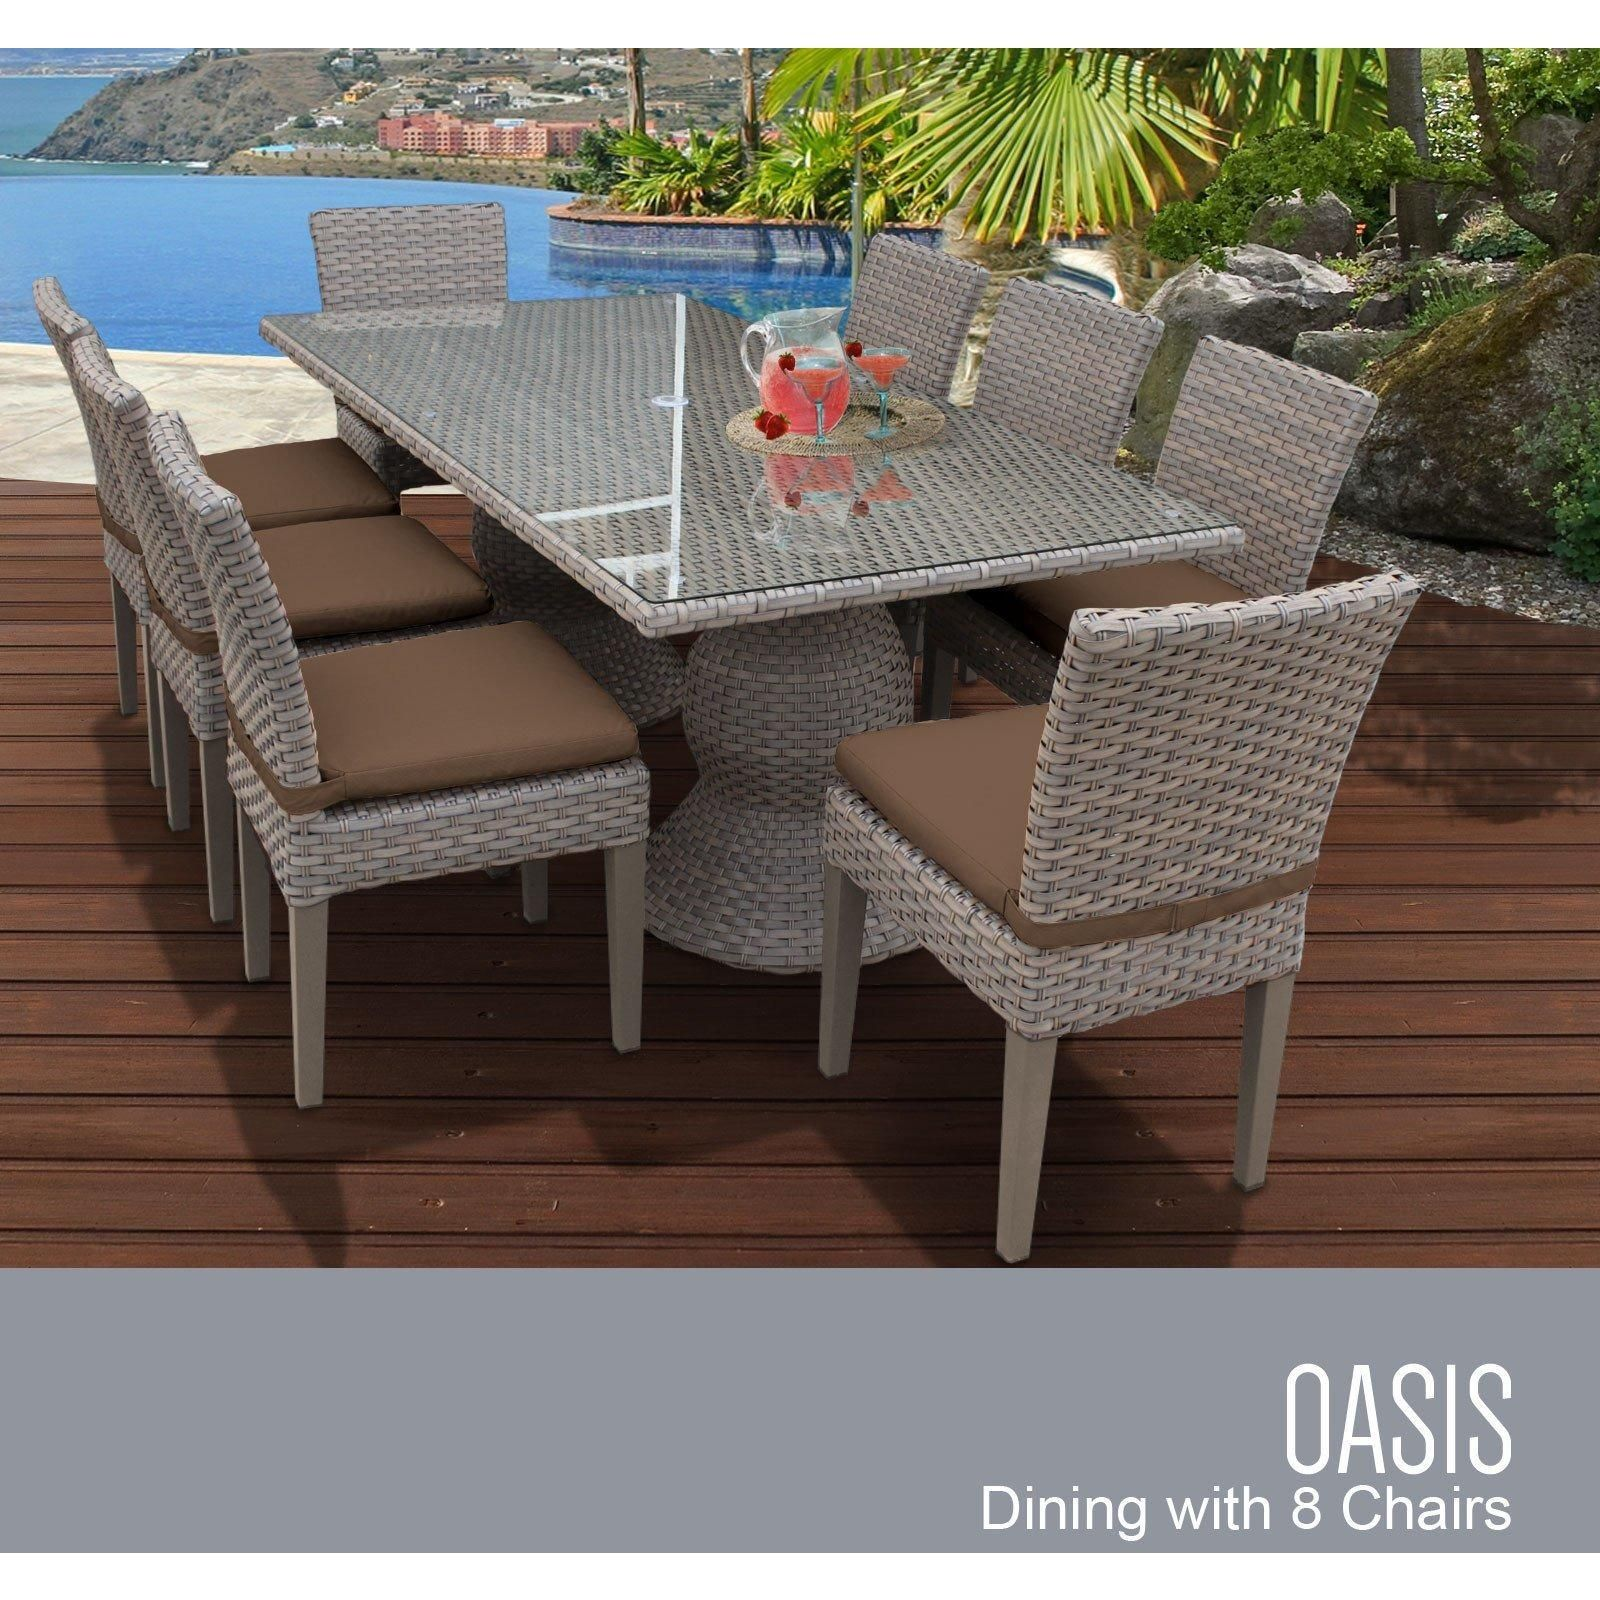 Oasis Rectangular Outdoor Patio Dining Table with 8 Armless Chairs